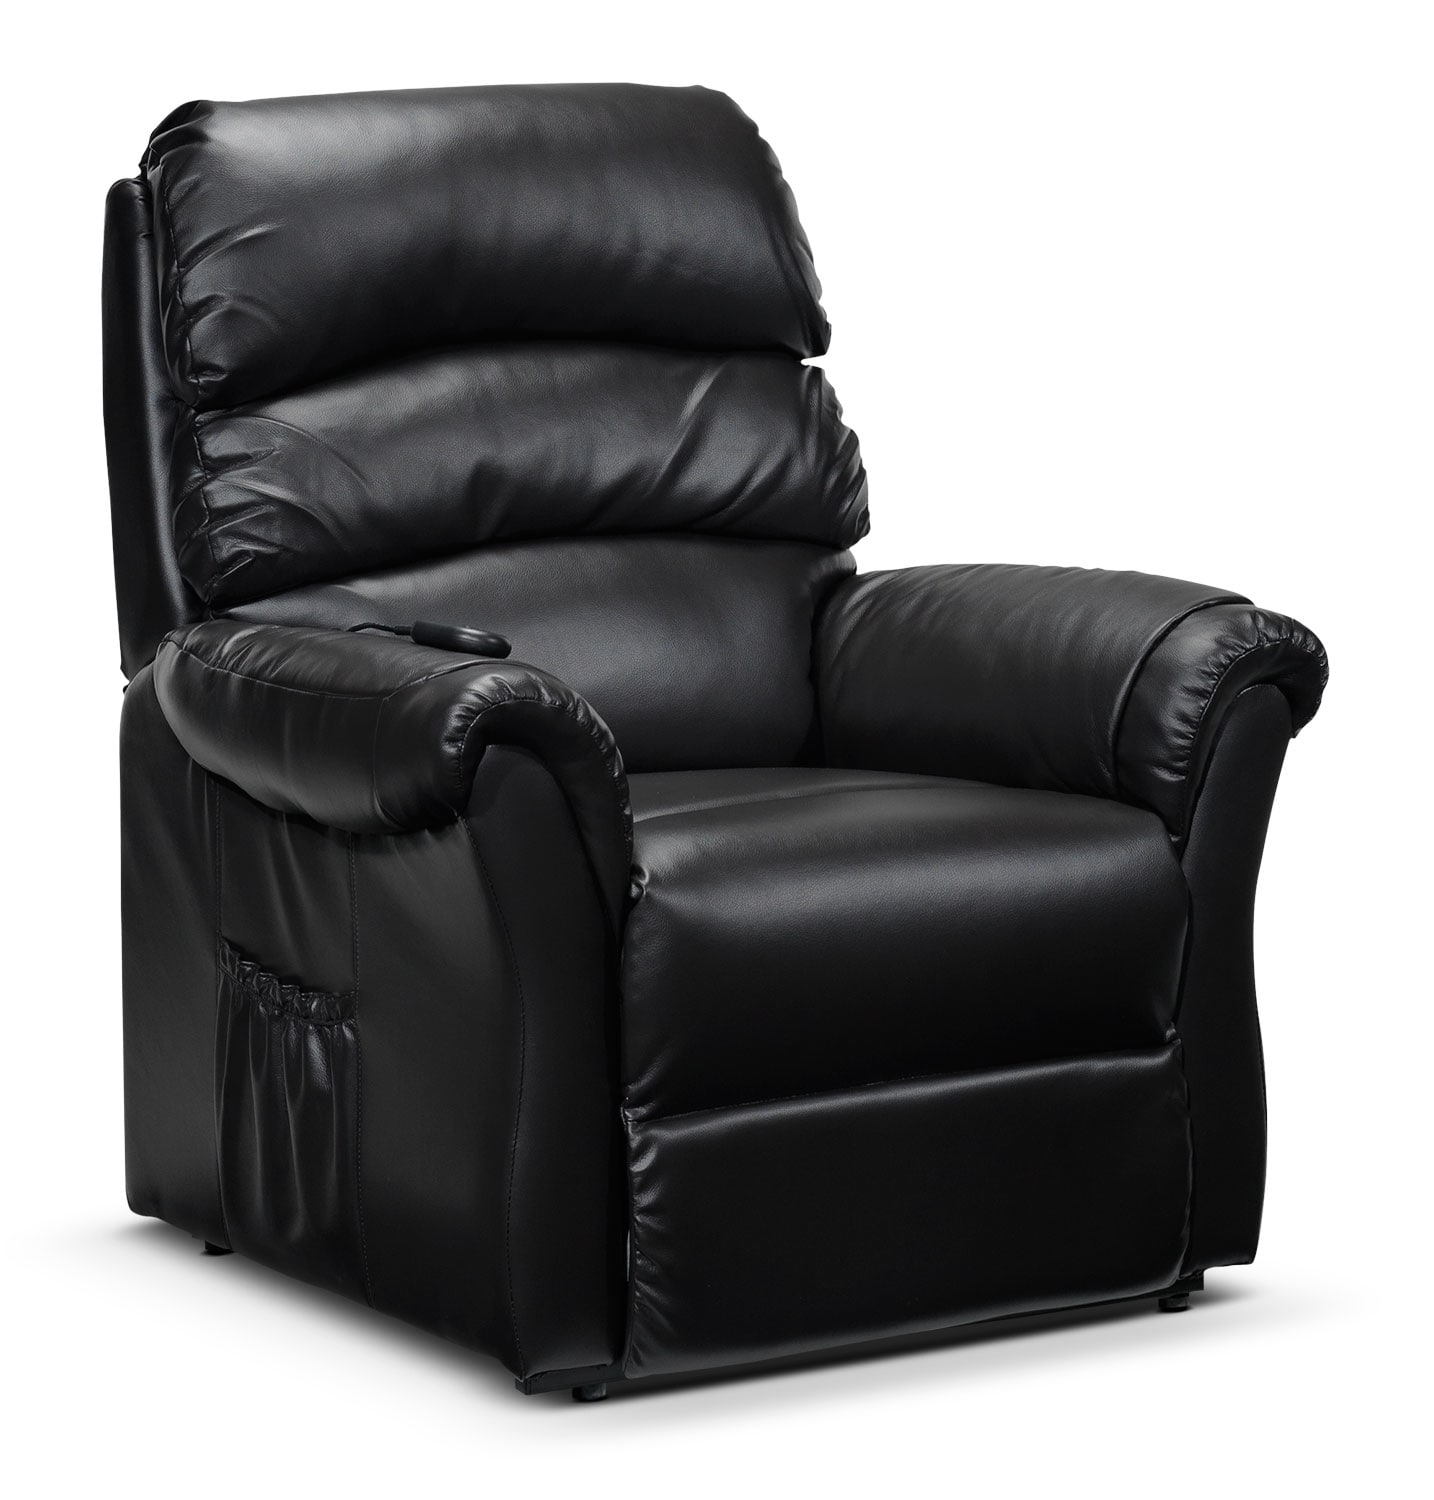 Lift Chairs Recliners Paolo Power Lift Recliner Dark Brown Leon 39s